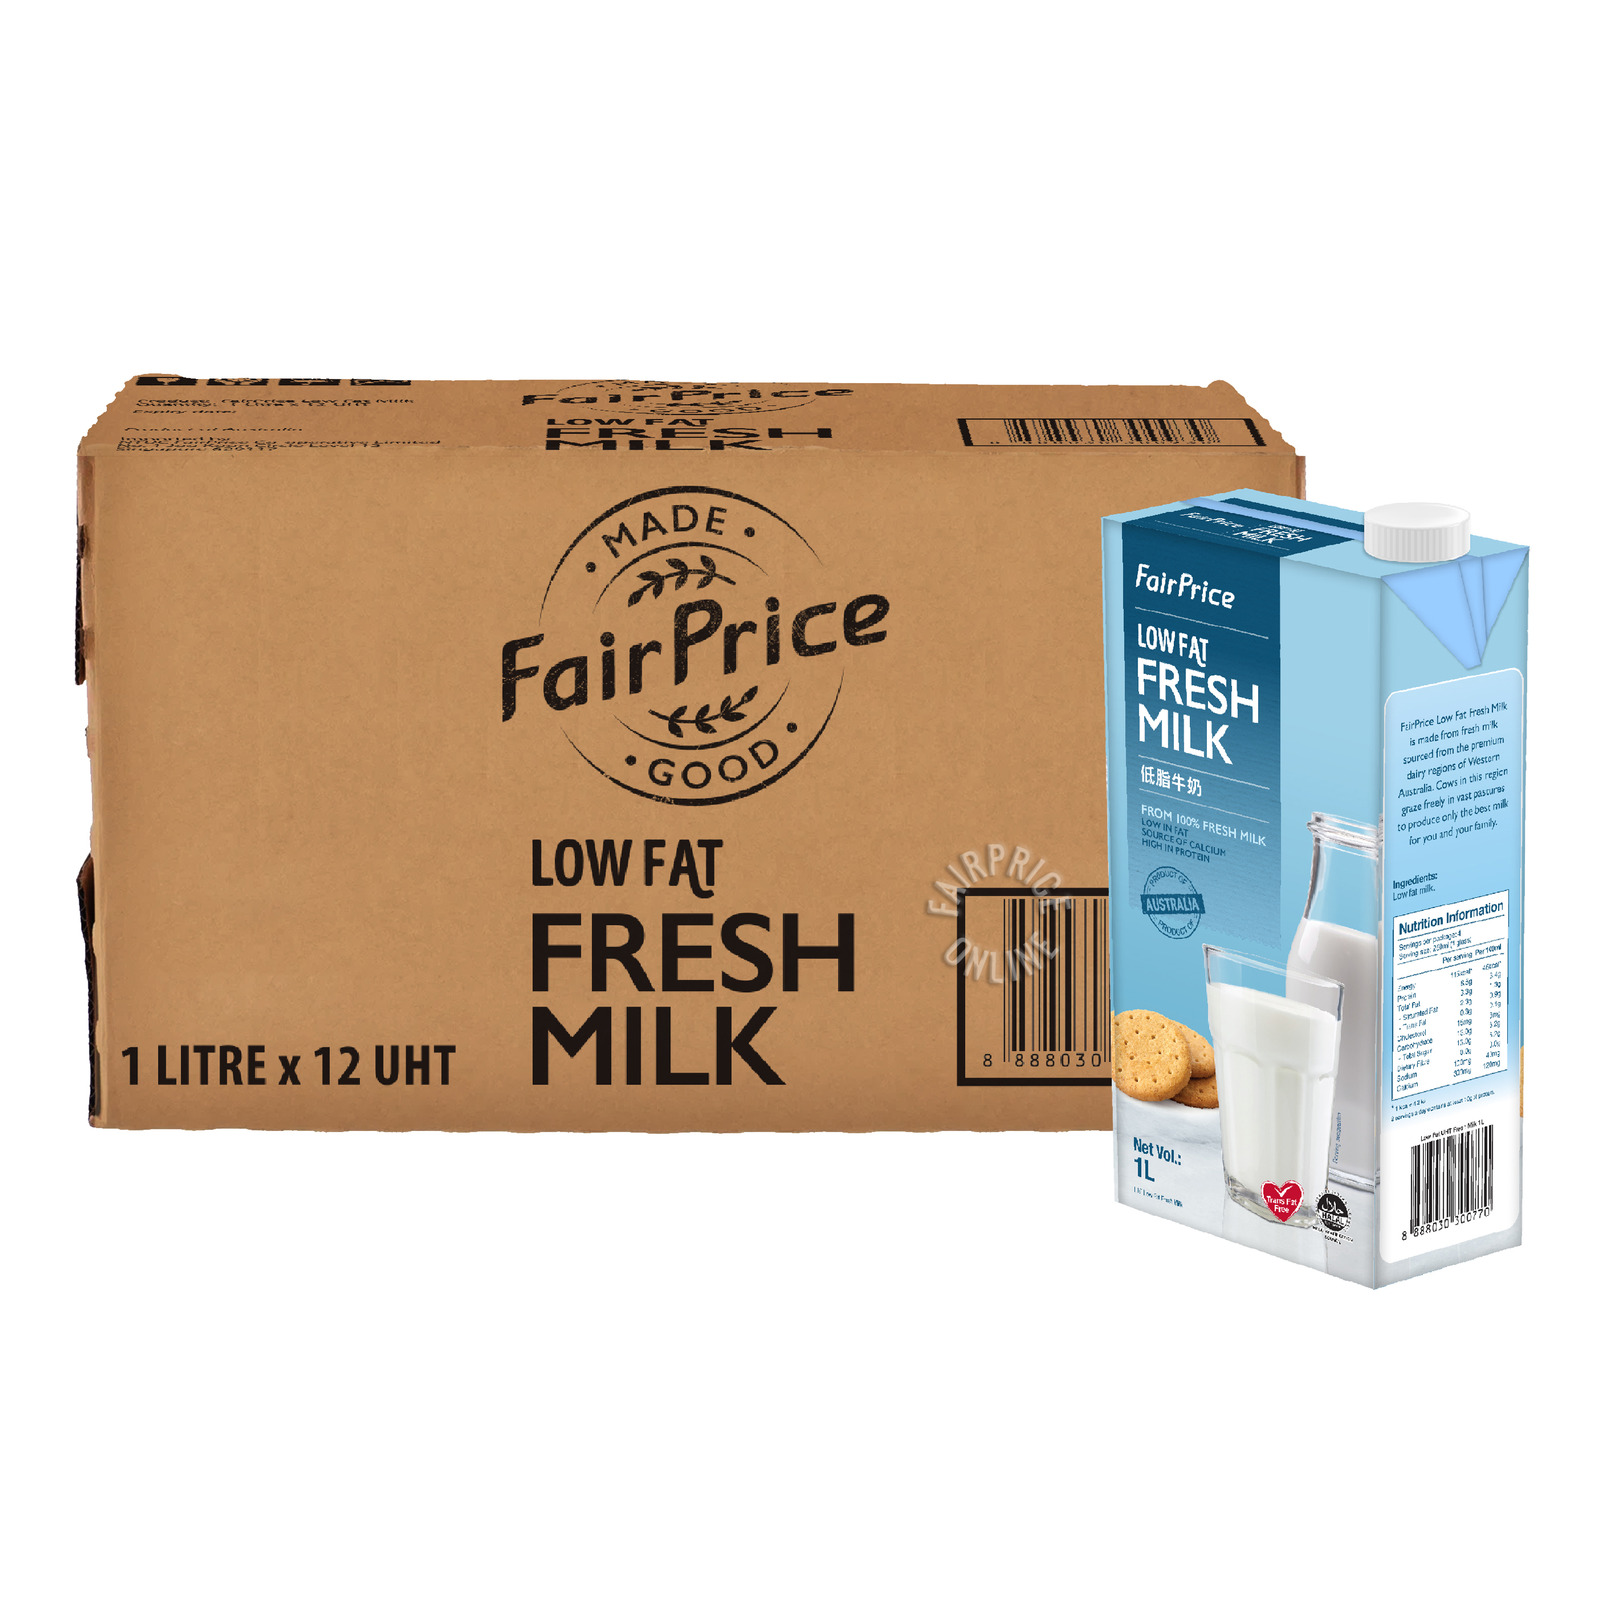 FairPrice UHT Milk - Low Fat